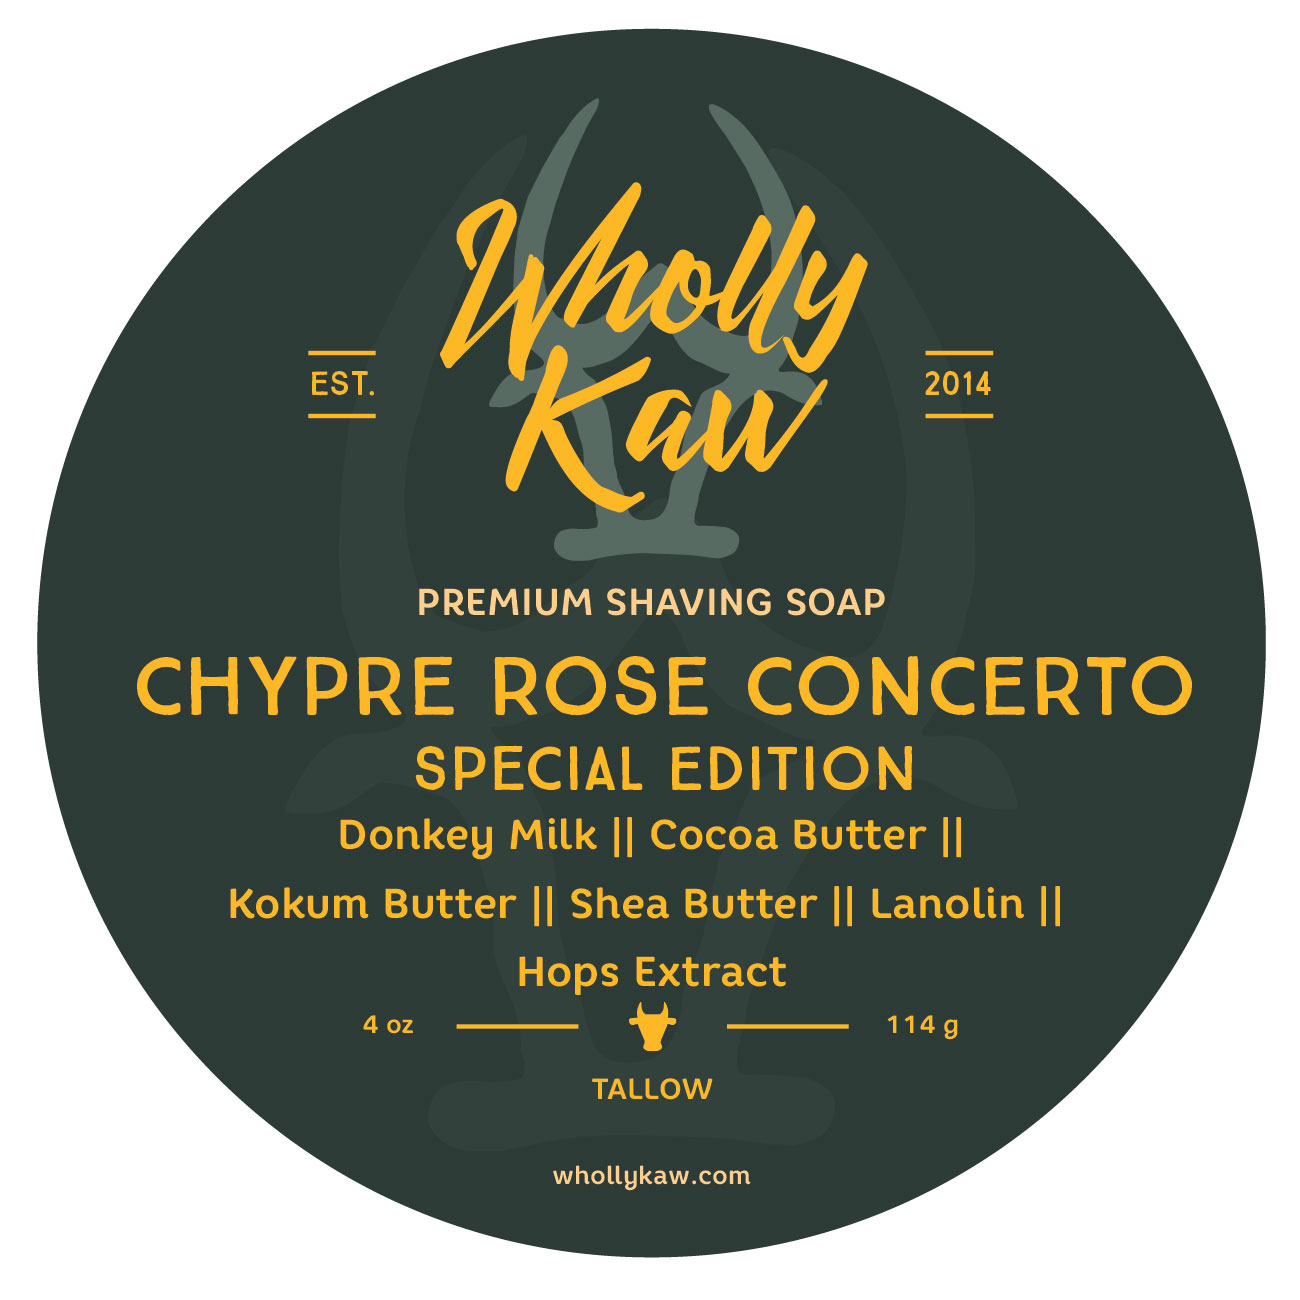 Wholly Kaw - Chypre Rose Concerto - Soap (LE) image